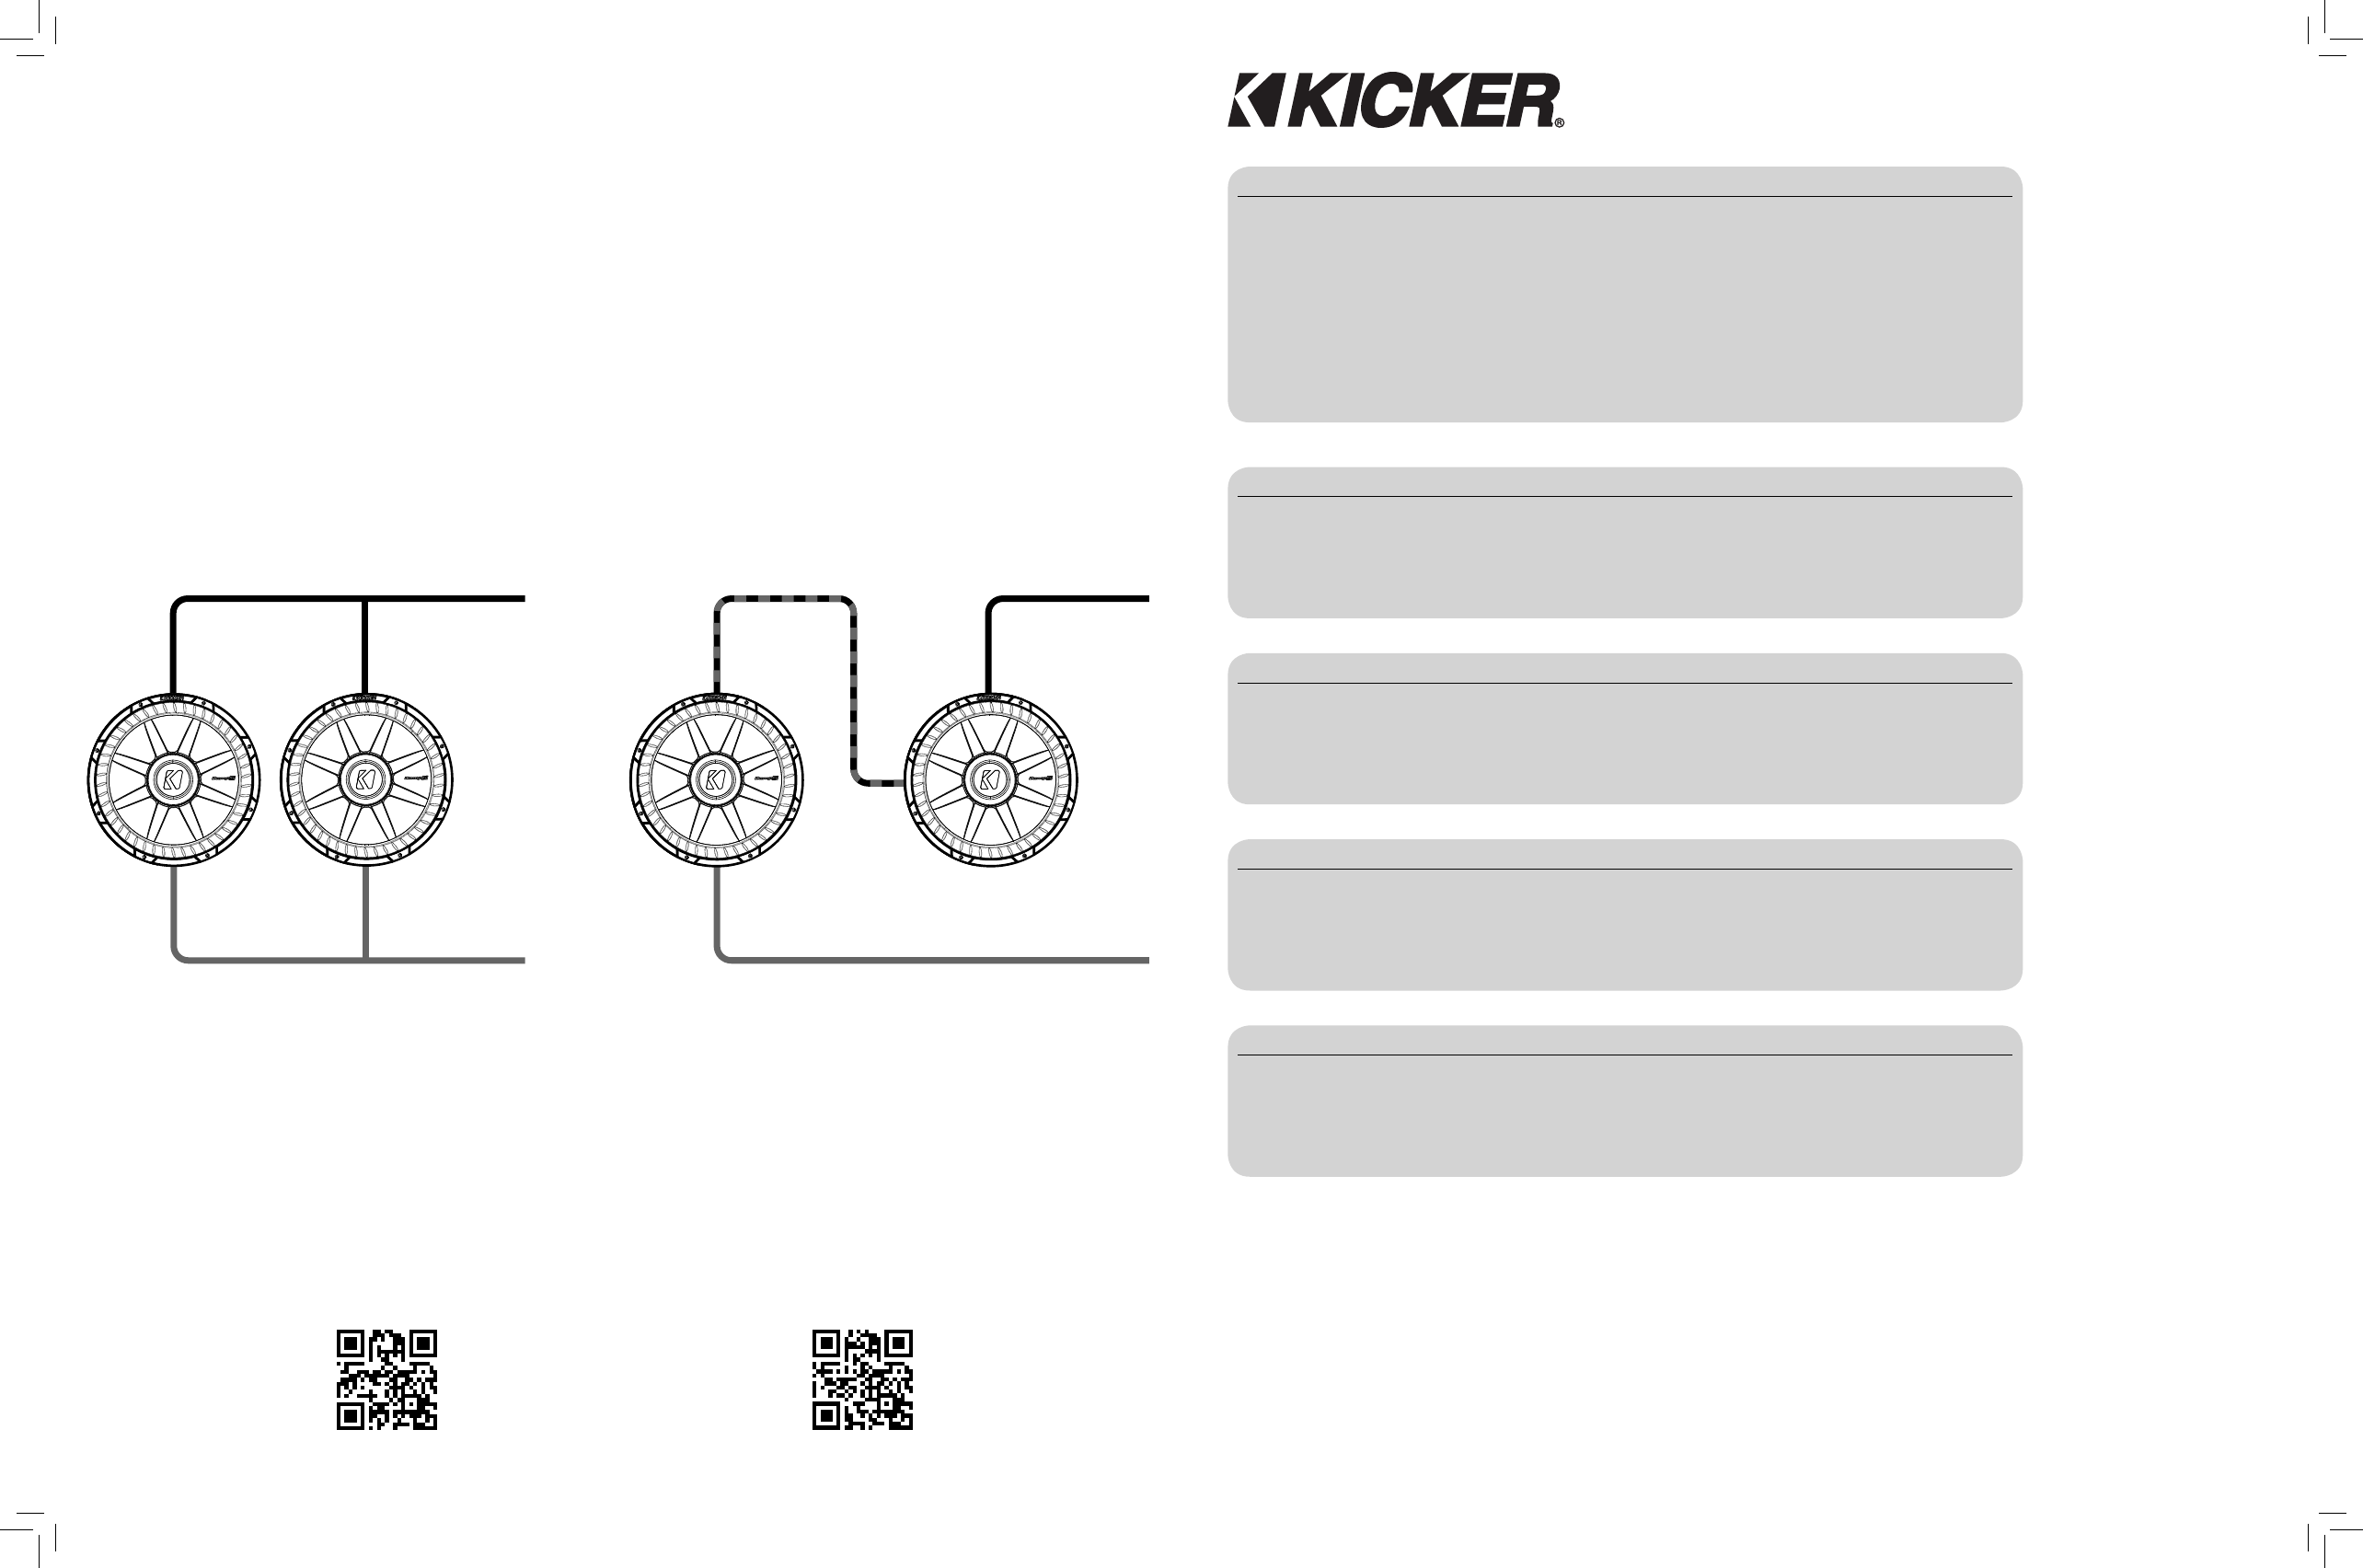 kicker car speaker 40cws104 user guide manualsonline com